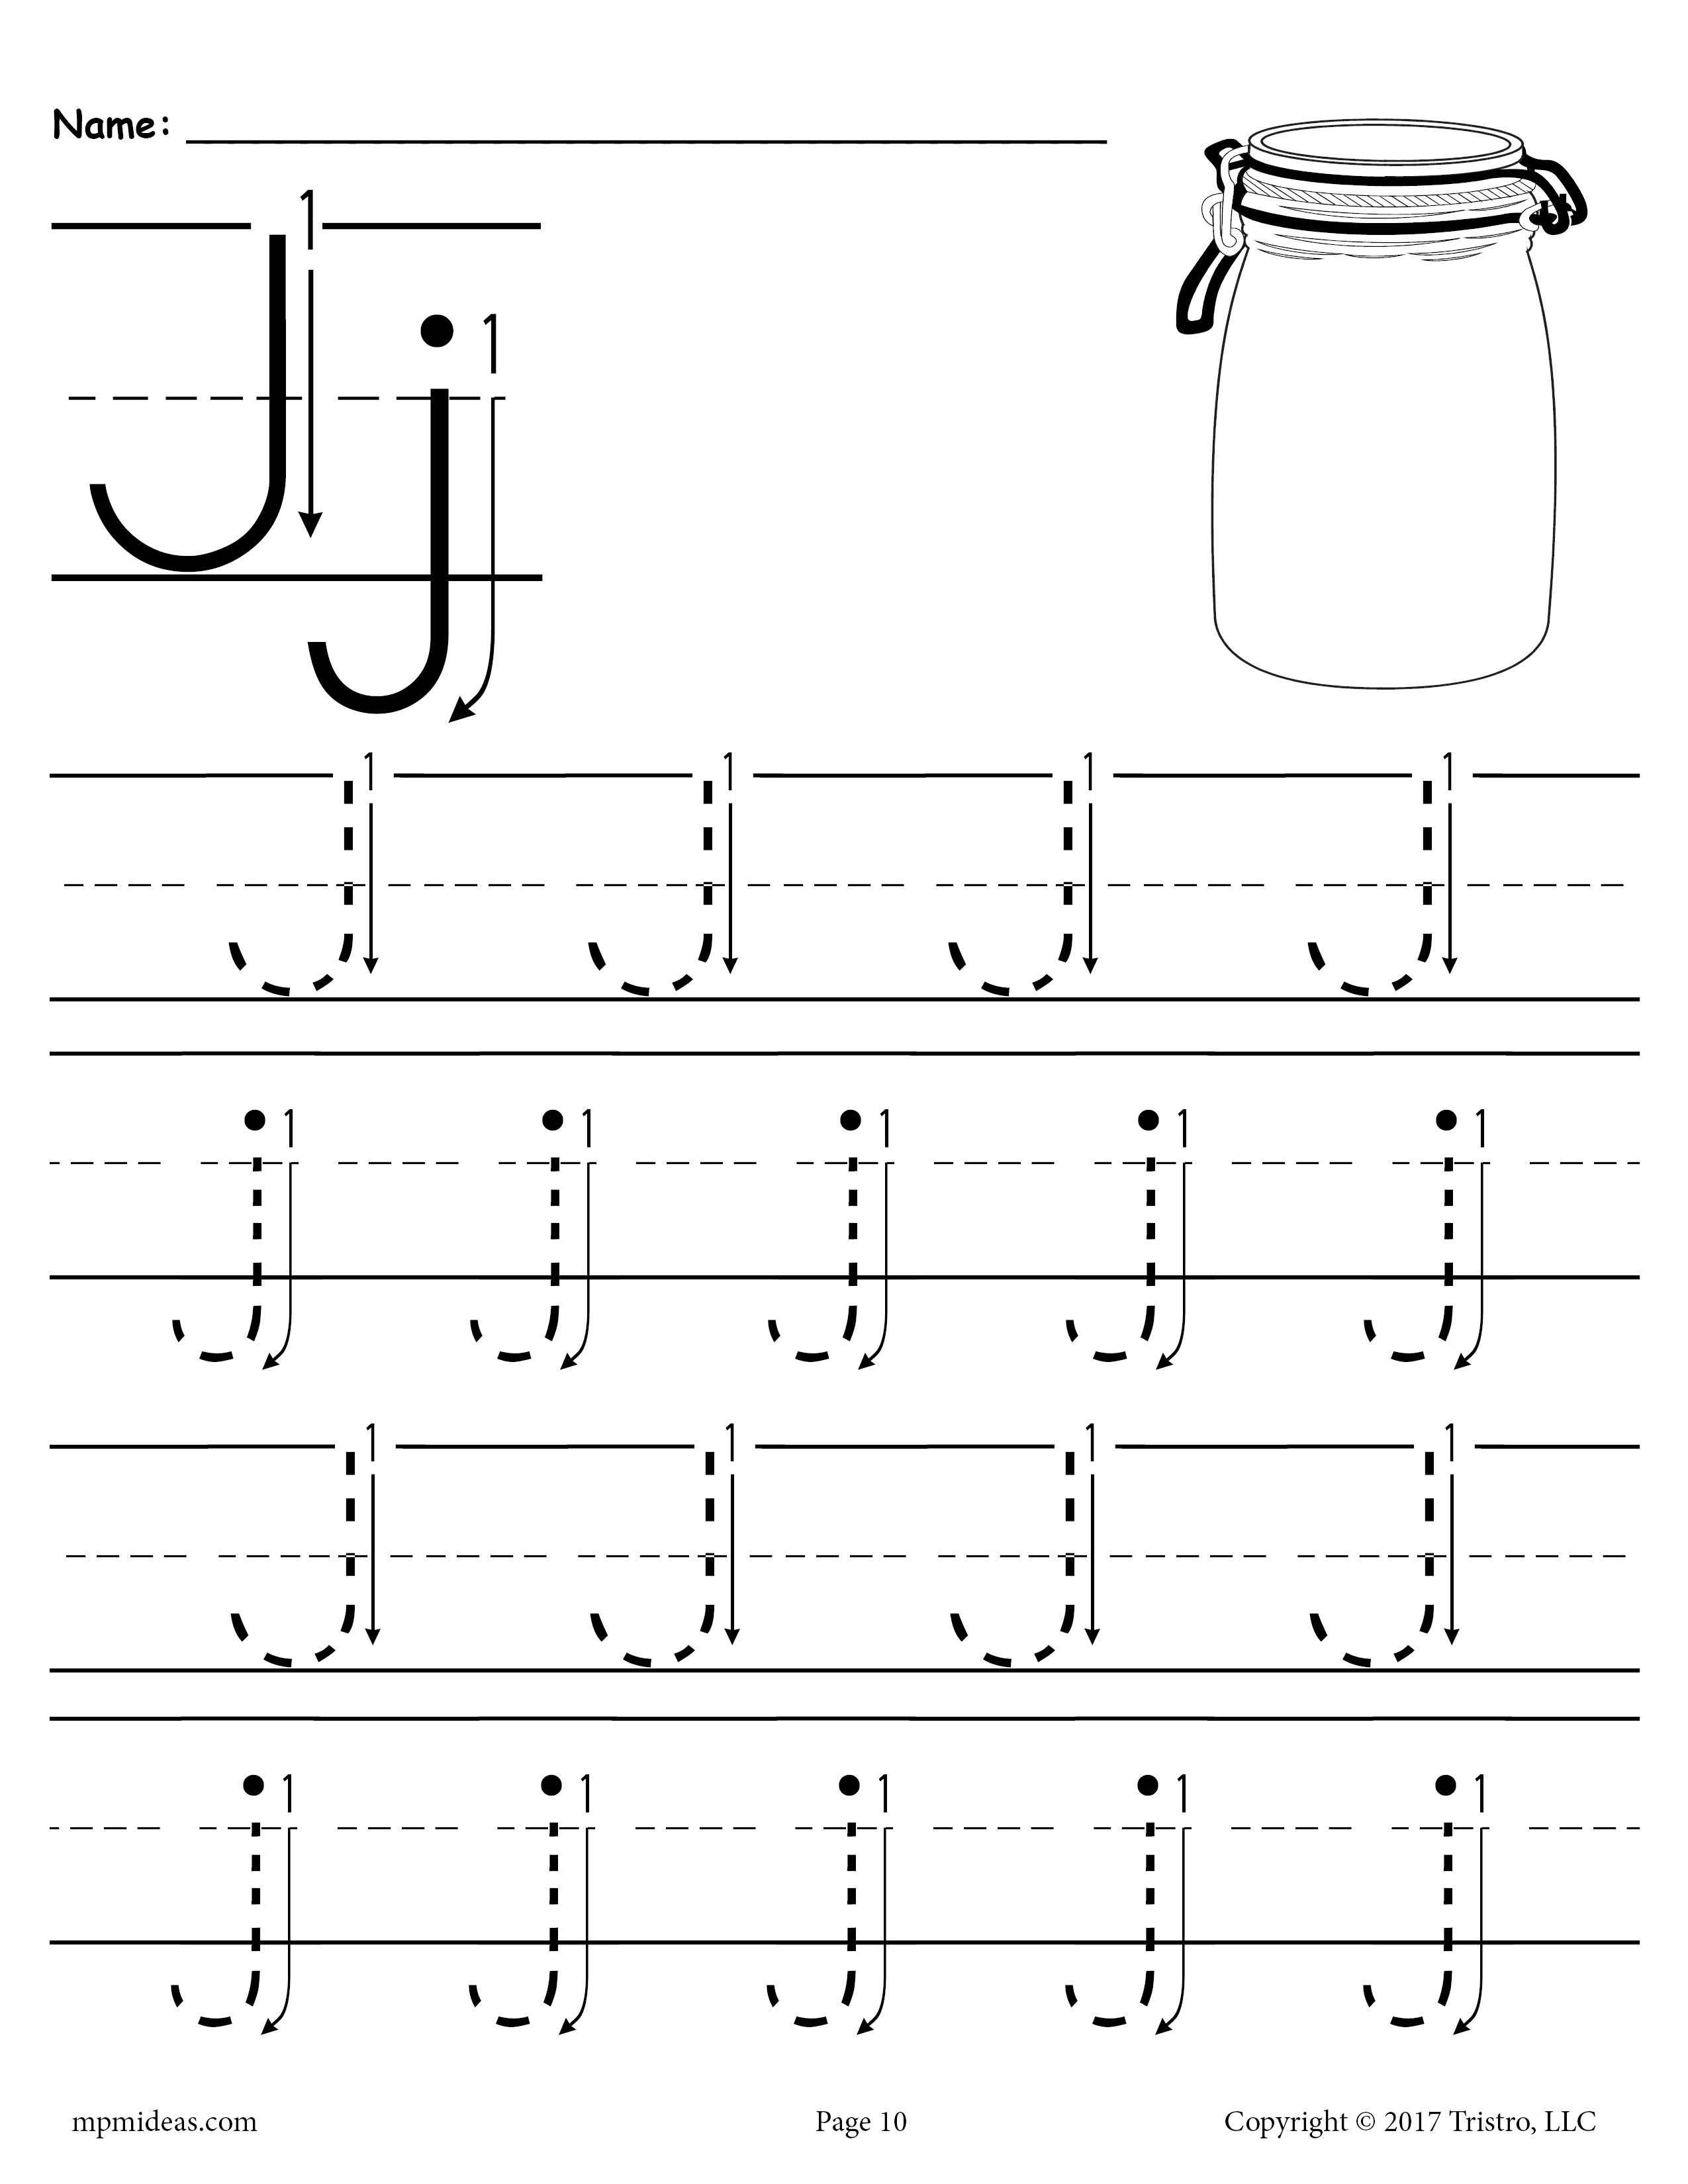 Printable Letter J Tracing Worksheet With Number And Arrow Guides Tracing Worksheets Preschool Letter Tracing Worksheets Tracing Worksheets [ 3300 x 2550 Pixel ]